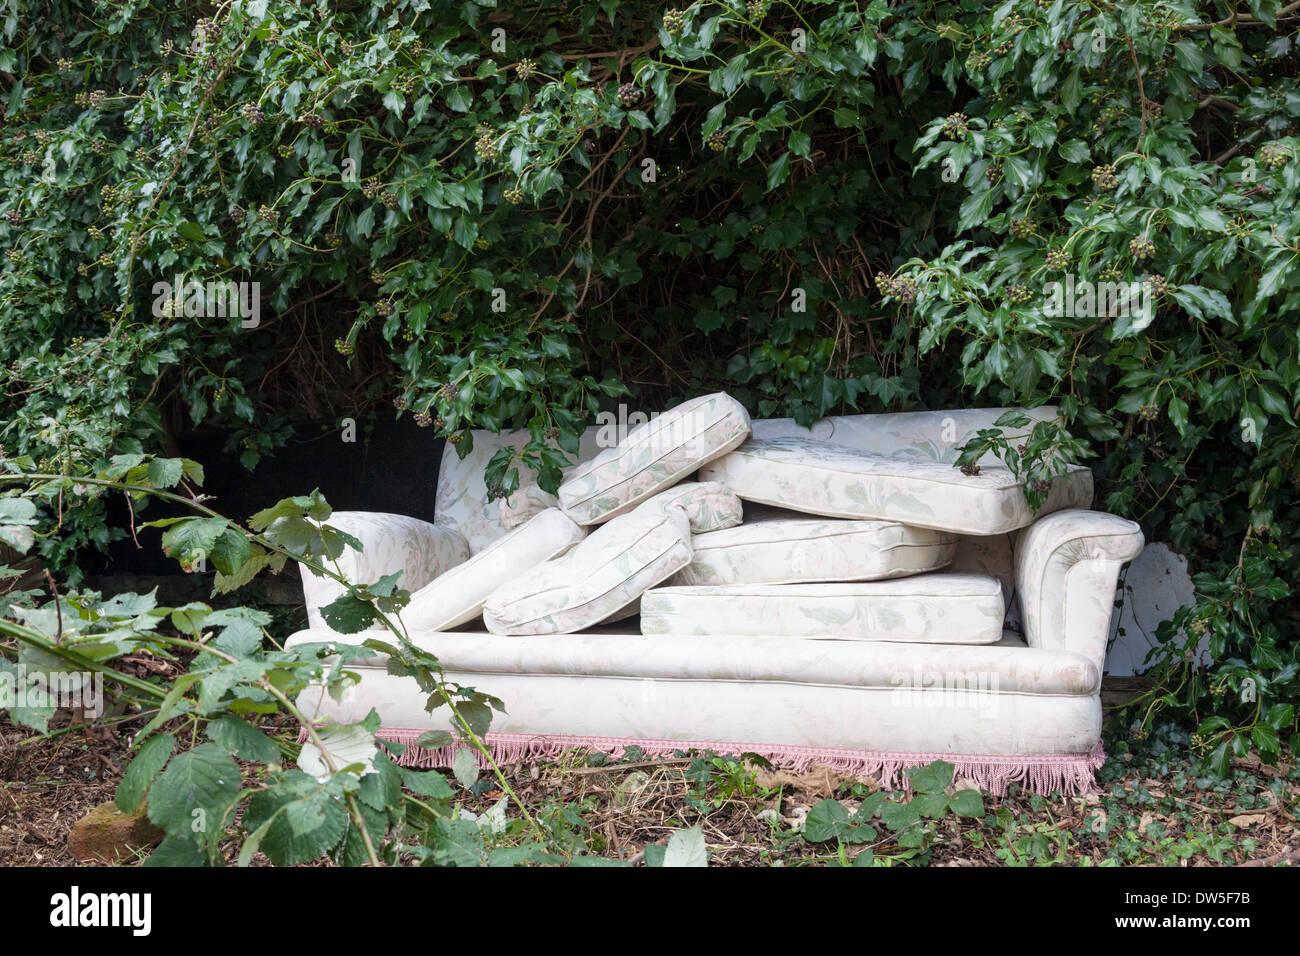 Fly tipping in the UK. Illegal dumping of furniture underneath a tree, Nottinghamshire, England, UK Stock Photo